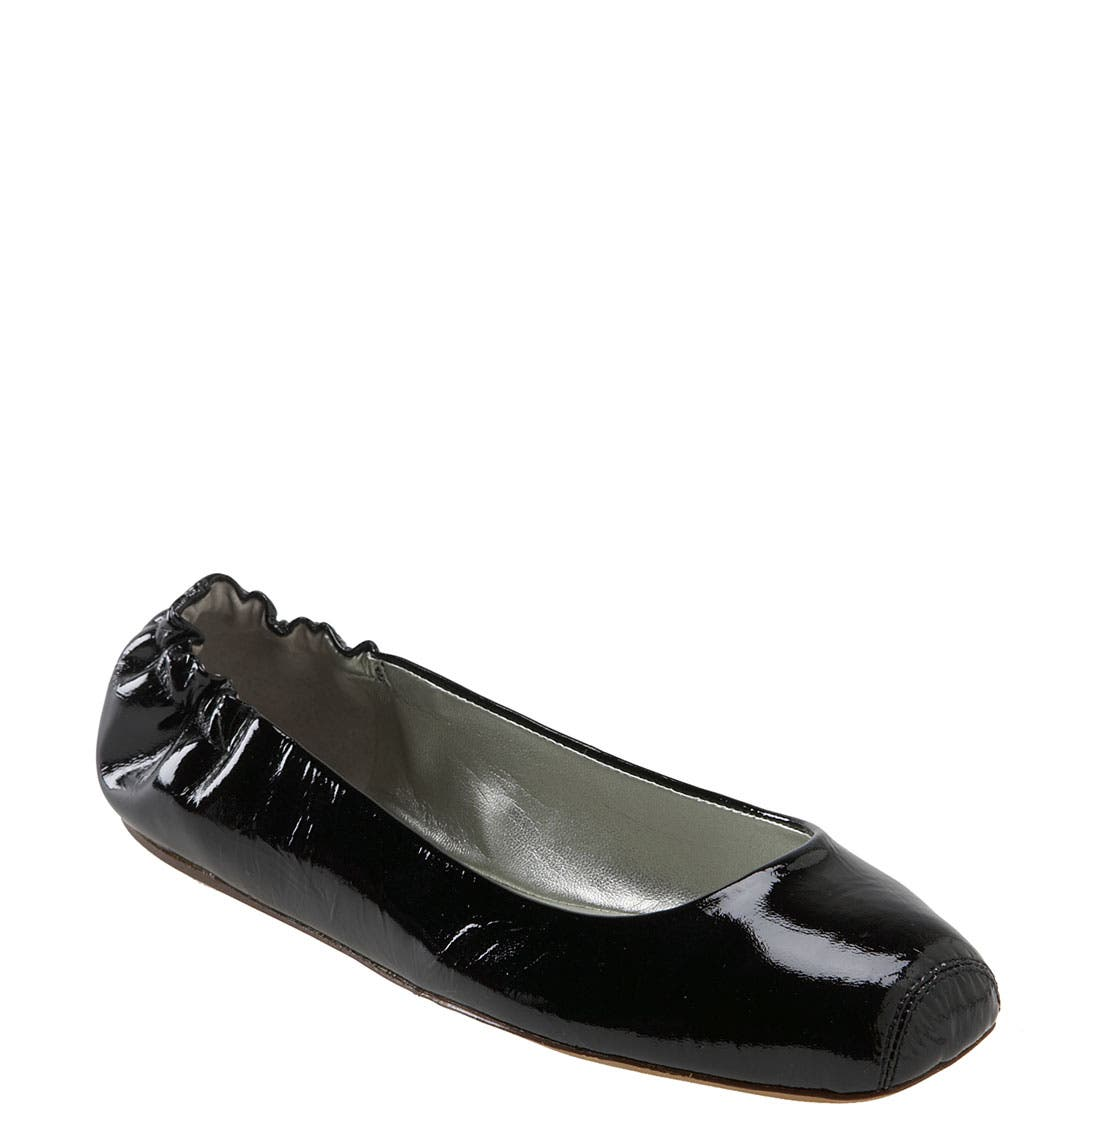 Alternate Image 1 Selected - Ruby & Bloom 'Grace' Ballerina Flat